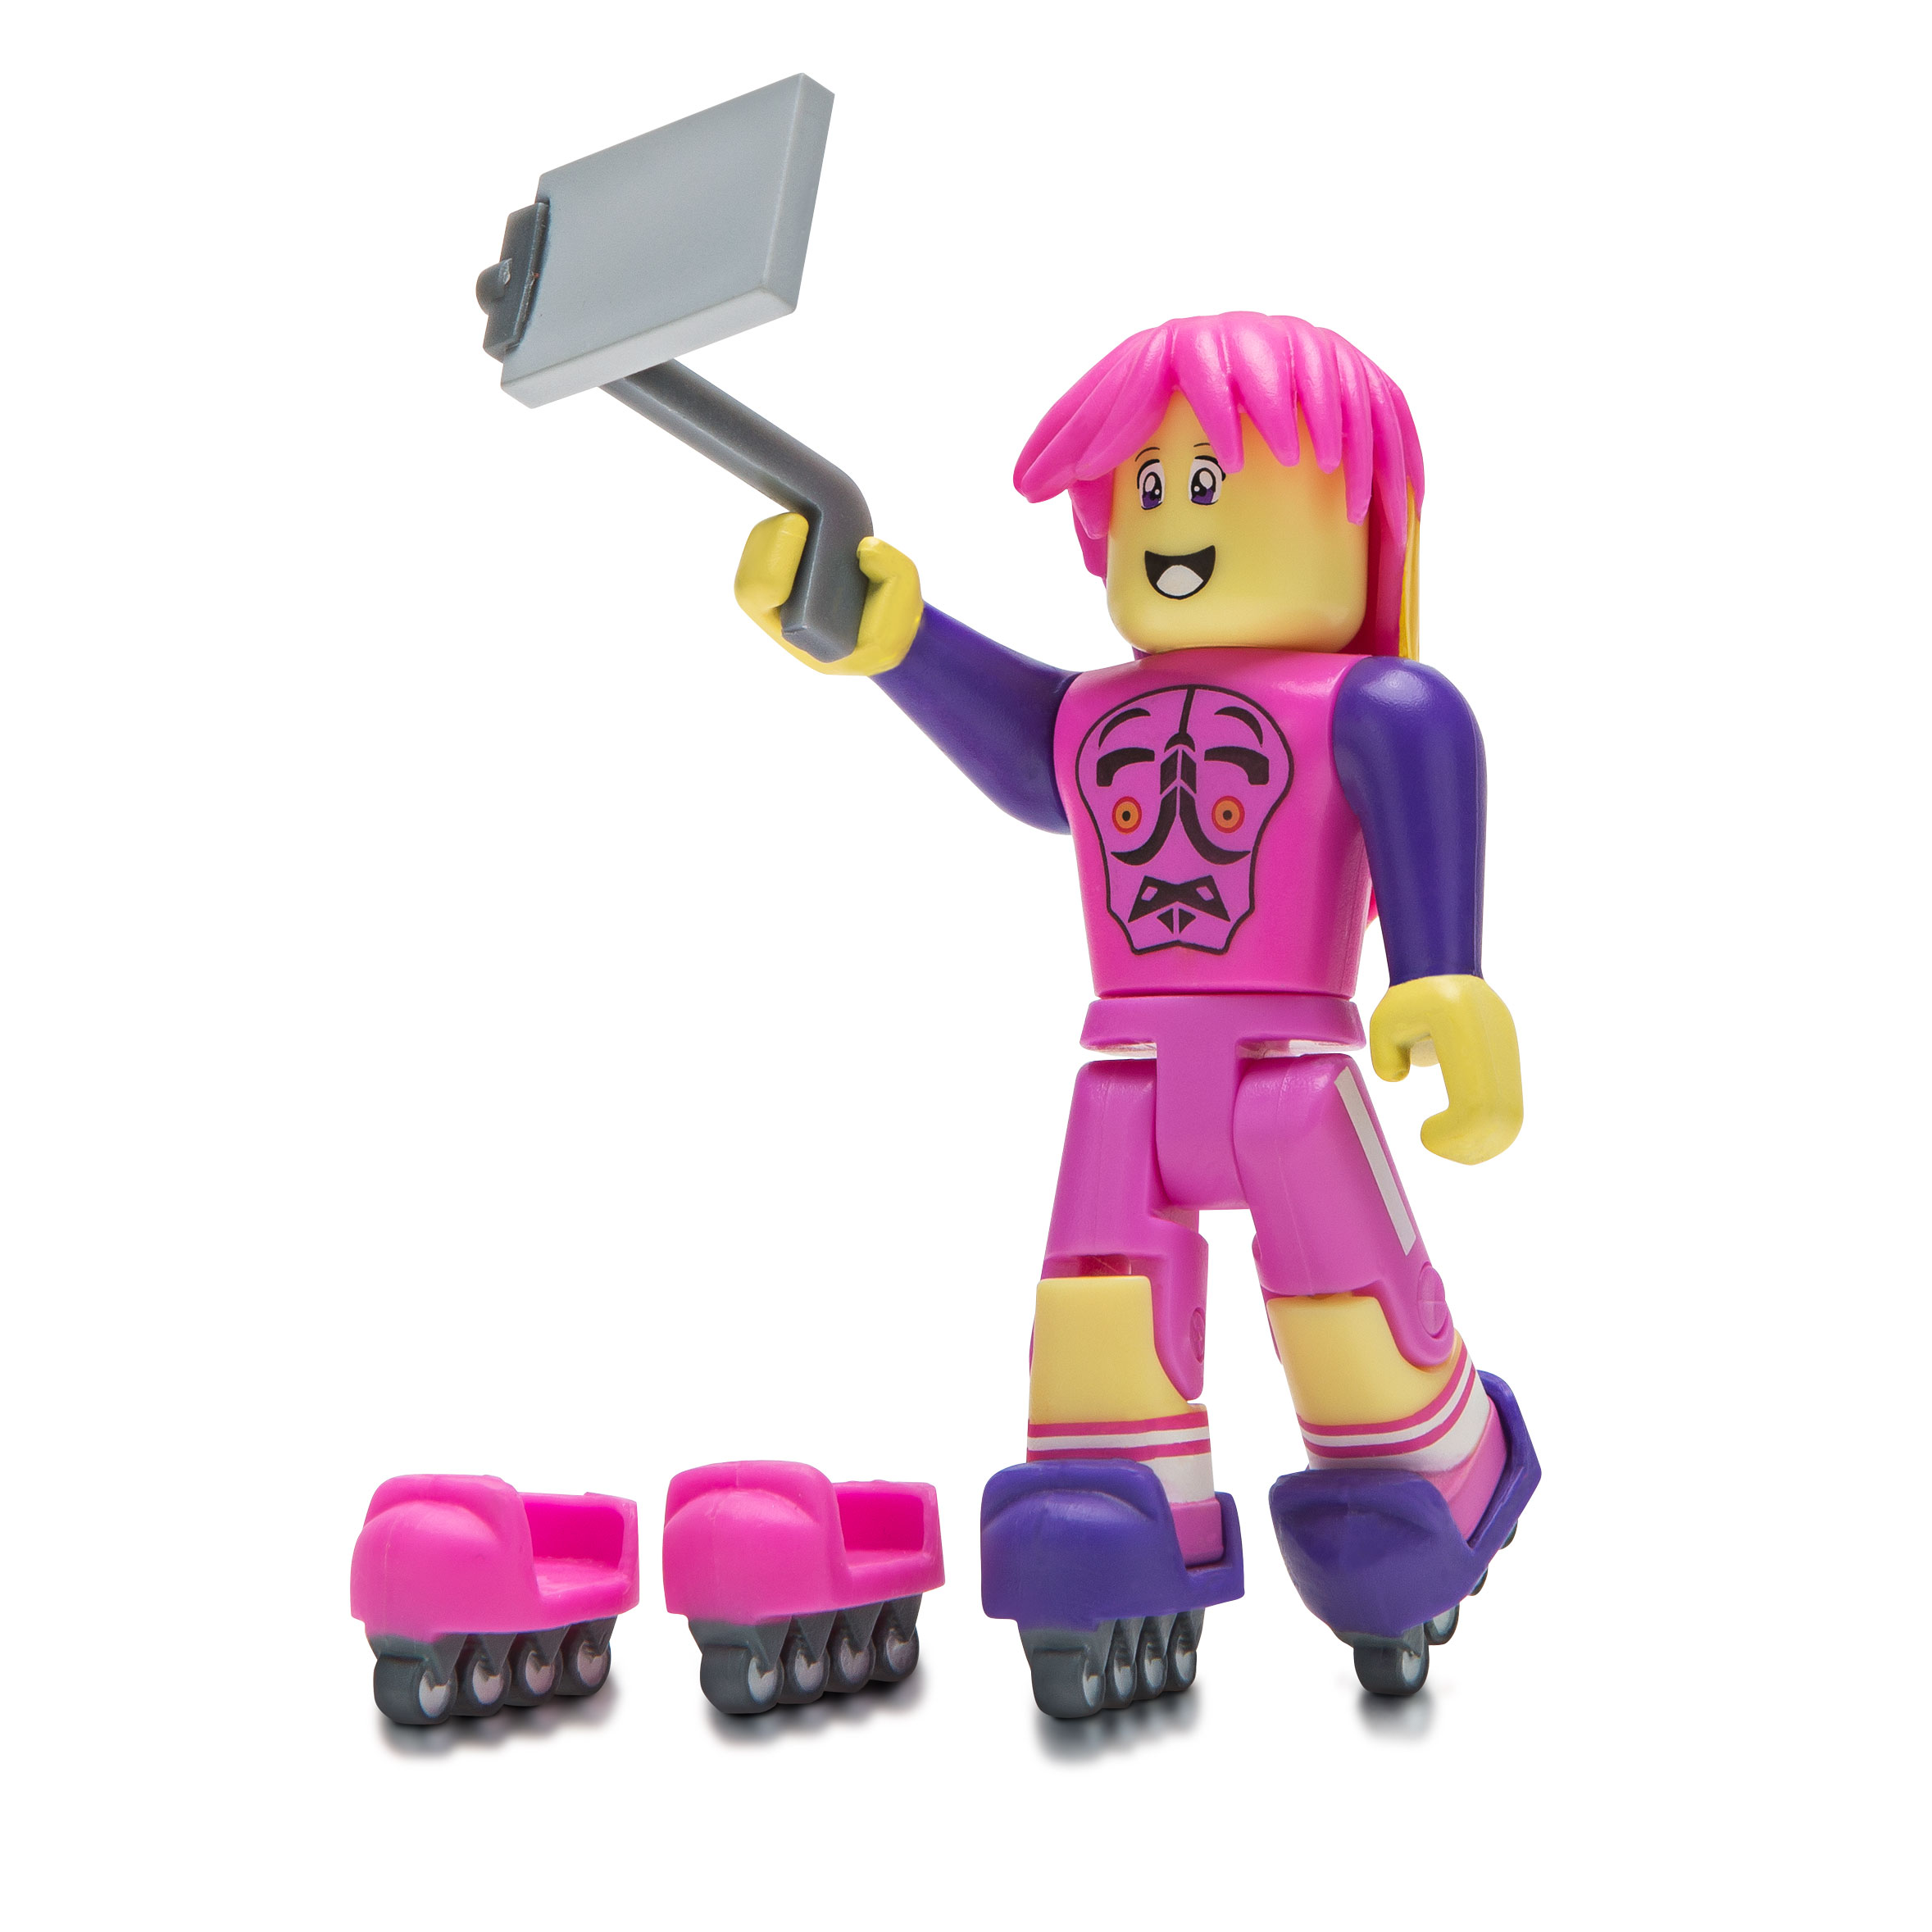 Roblox Celebrity Collection Roblox Skating Rink Figure Pack